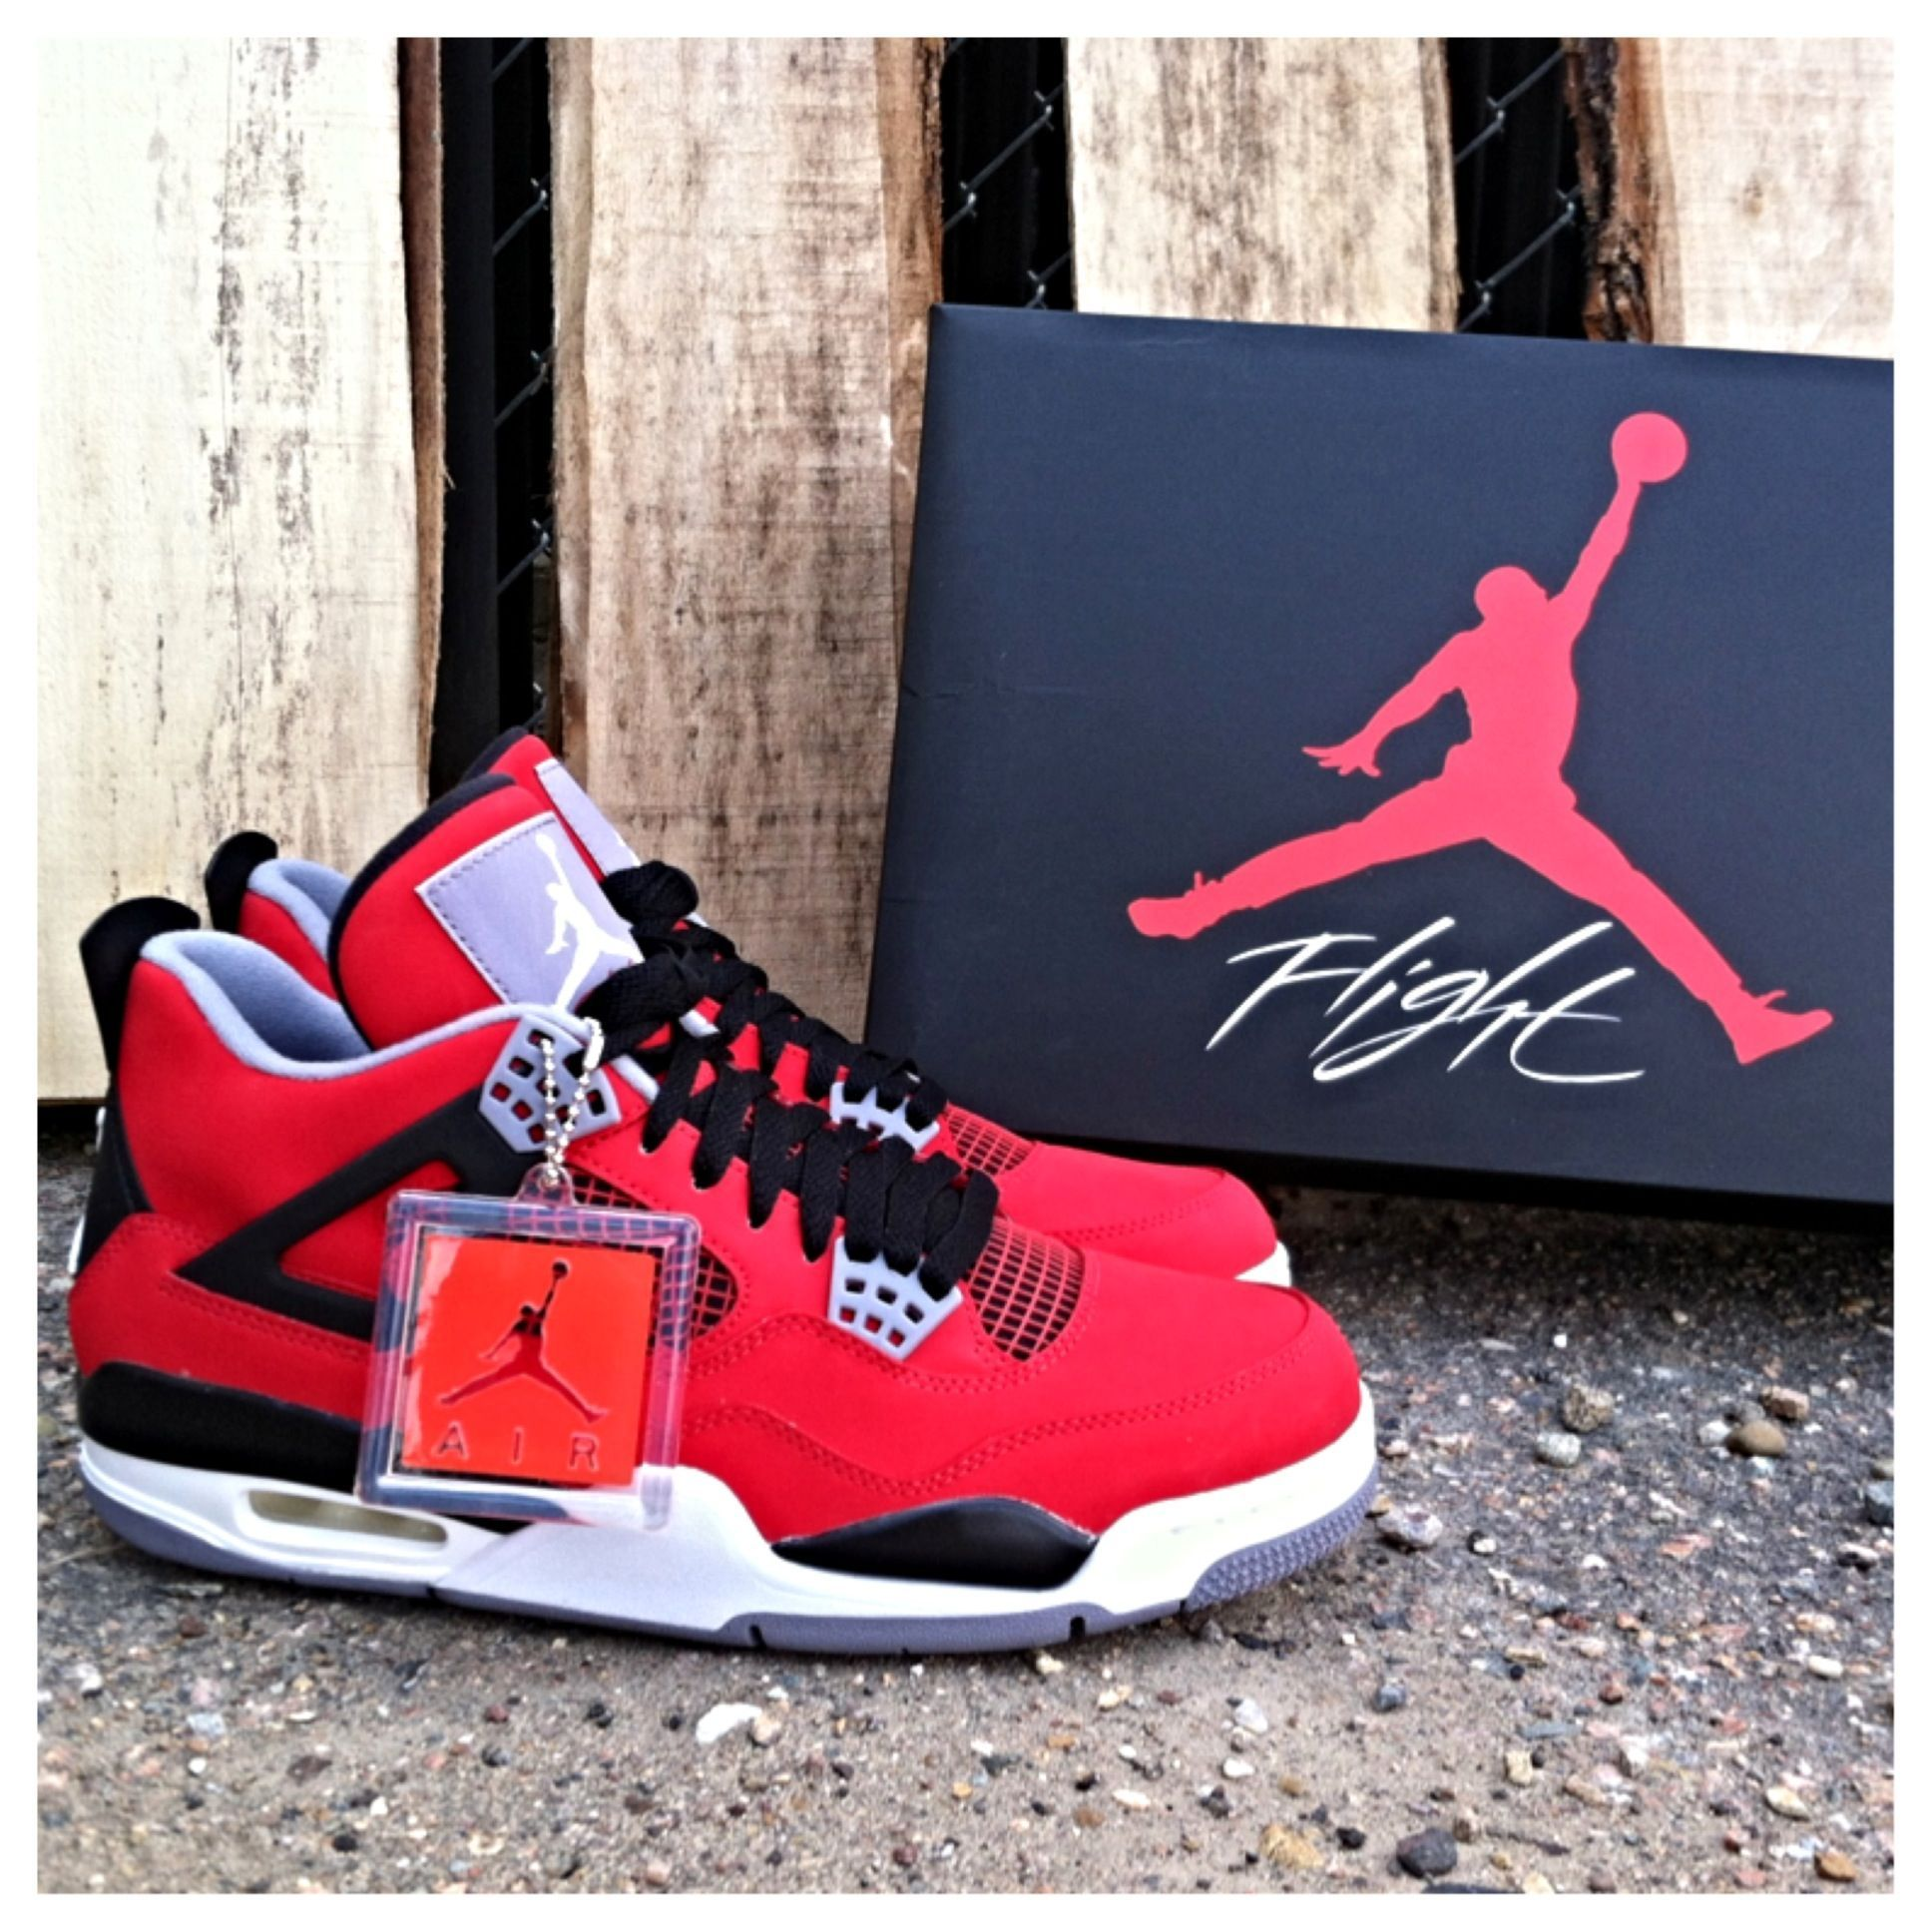 Next To Real Retro S Fake Retro S: #ReleaseReport: Cop Your Pair Of Jordan Retro 4s On 7/13